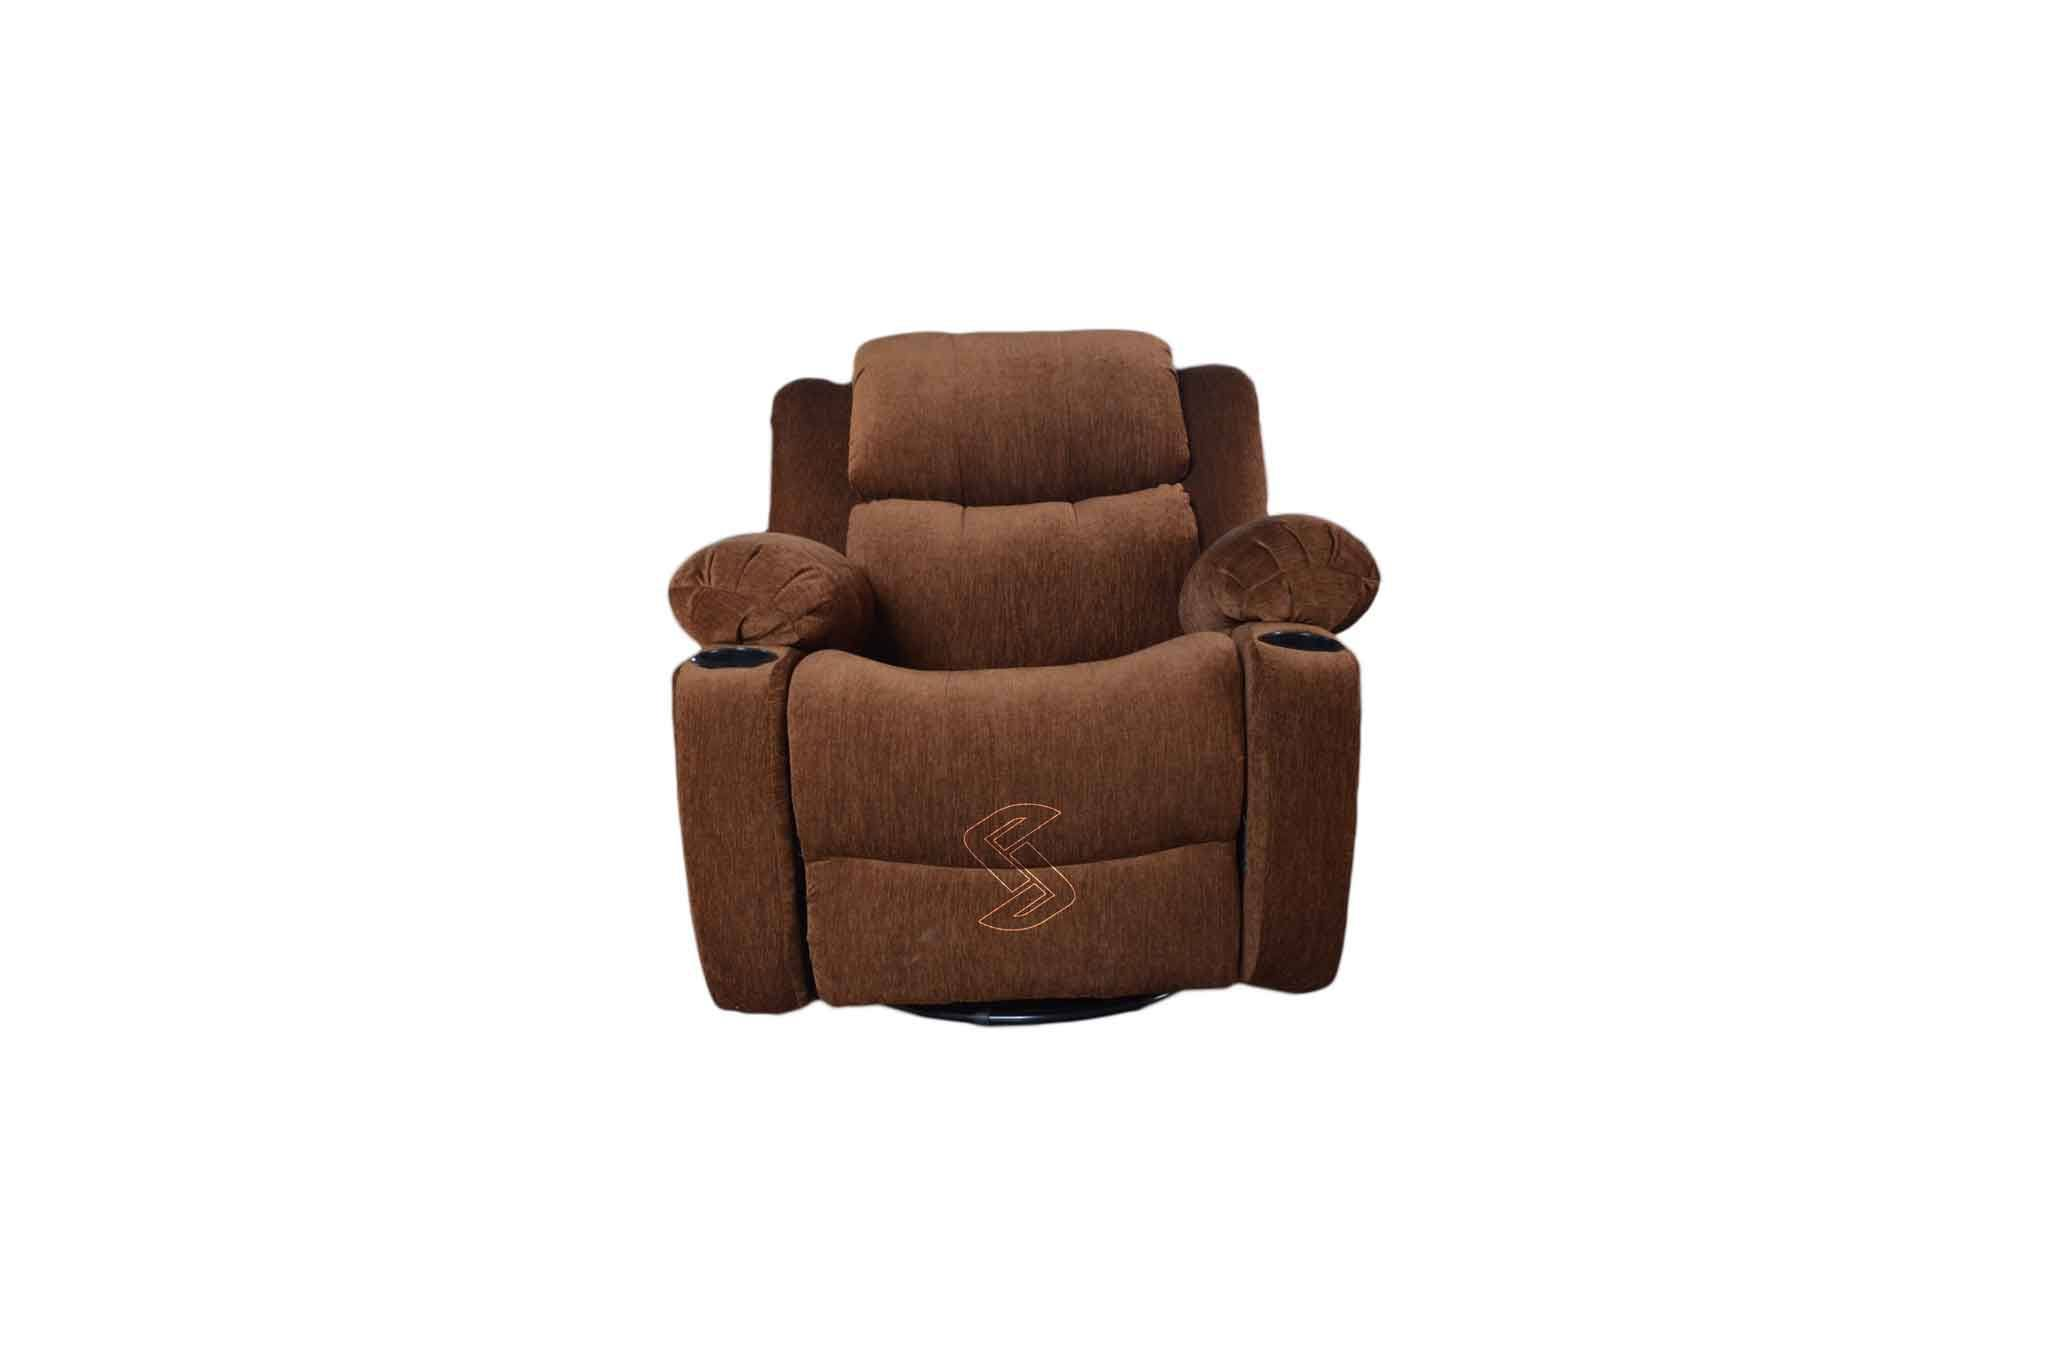 lift recliners heavy for luxurious chair adult duty recliner heynemo seat power bonded leather pin